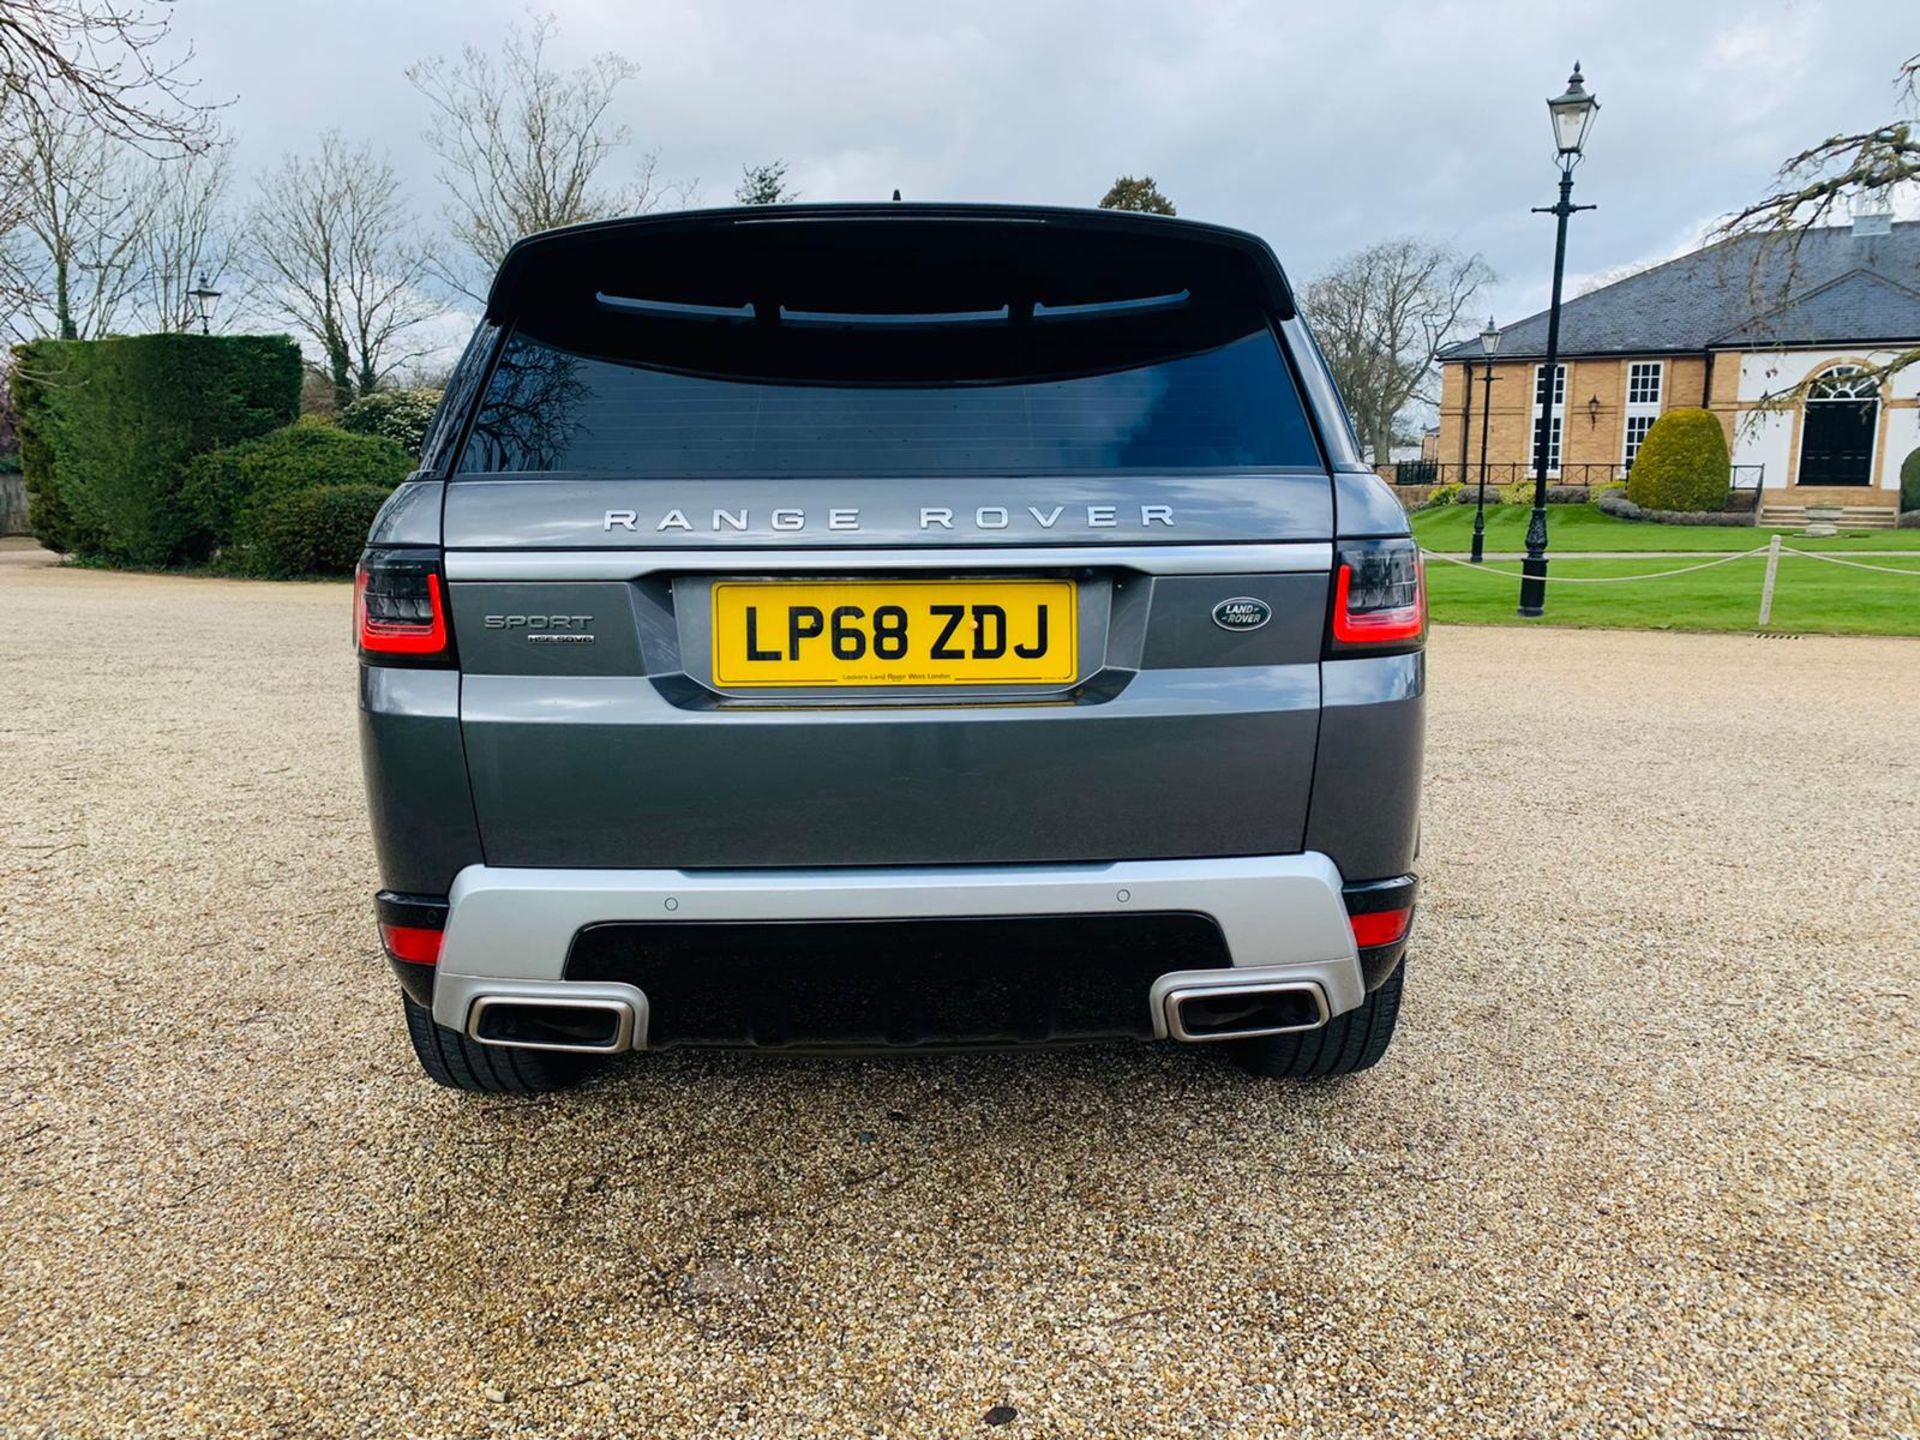 (RESERVE MET) Range Rover Sport 3.0 SDV6 HSE Auto - 2019 - 1 Keeper From New - Virtual Cockpit - - Image 4 of 42